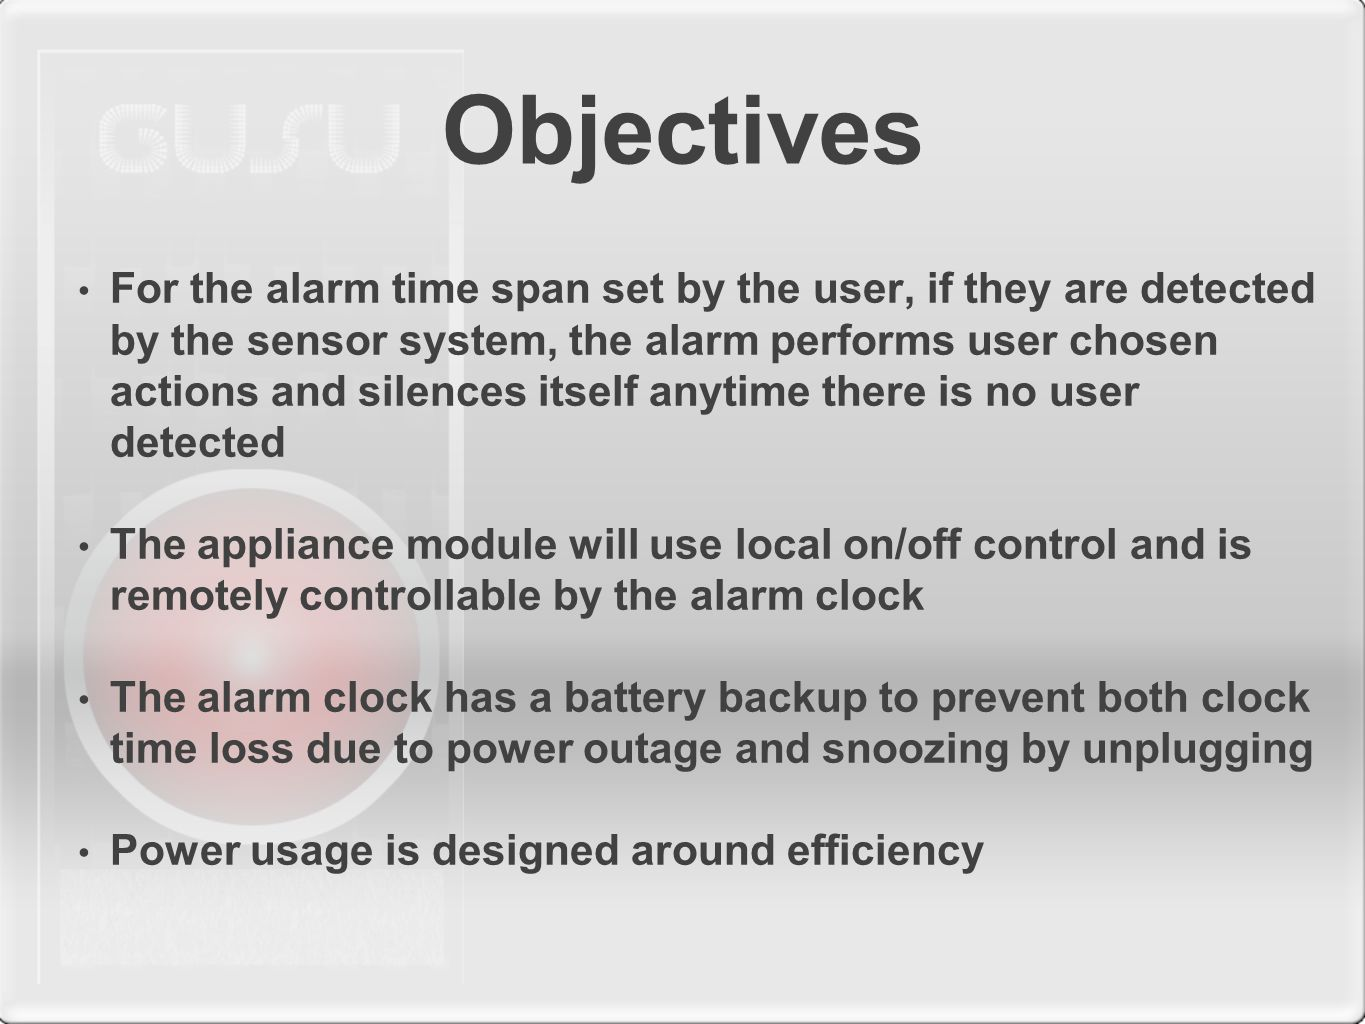 Objectives For the alarm time span set by the user, if they are detected by the sensor system, the alarm performs user chosen actions and silences itself anytime there is no user detected The appliance module will use local on/off control and is remotely controllable by the alarm clock The alarm clock has a battery backup to prevent both clock time loss due to power outage and snoozing by unplugging Power usage is designed around efficiency